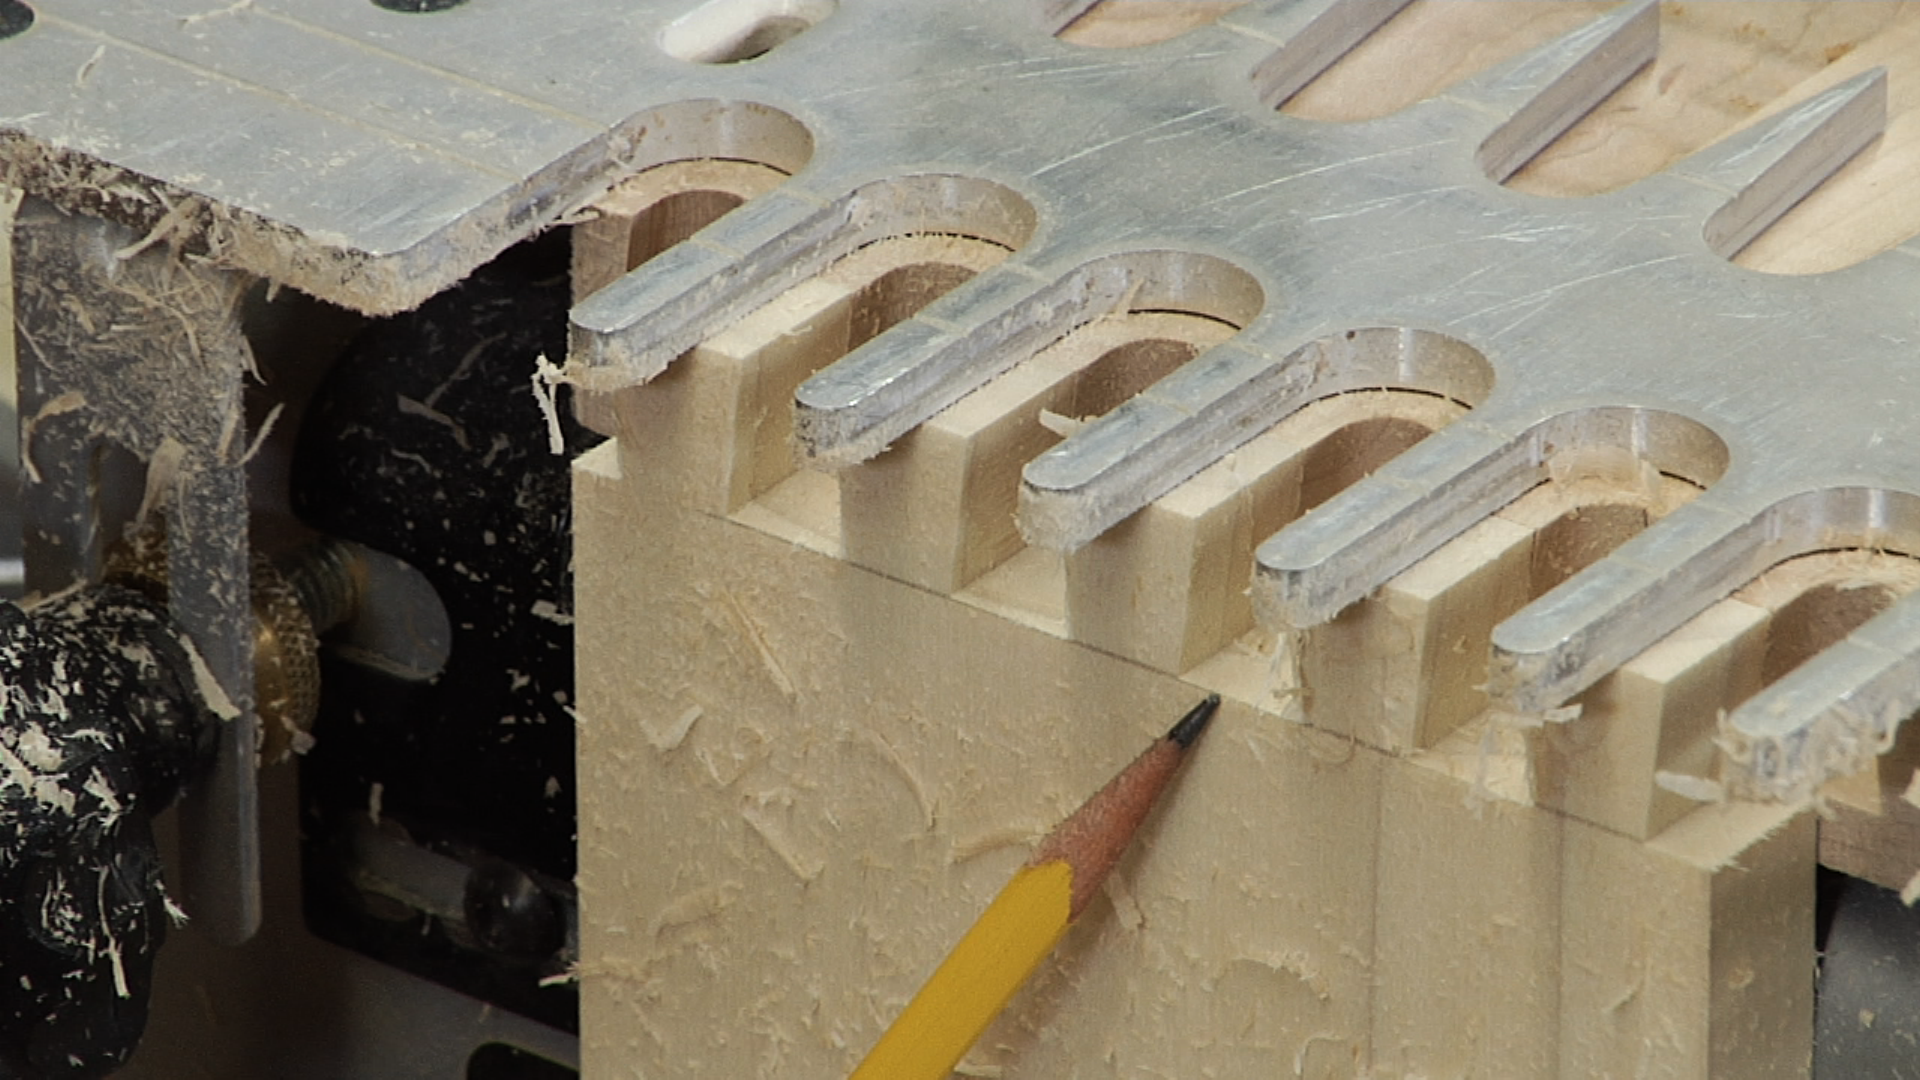 Porter Cable Dovetail Jig Cutting Through Dovetails